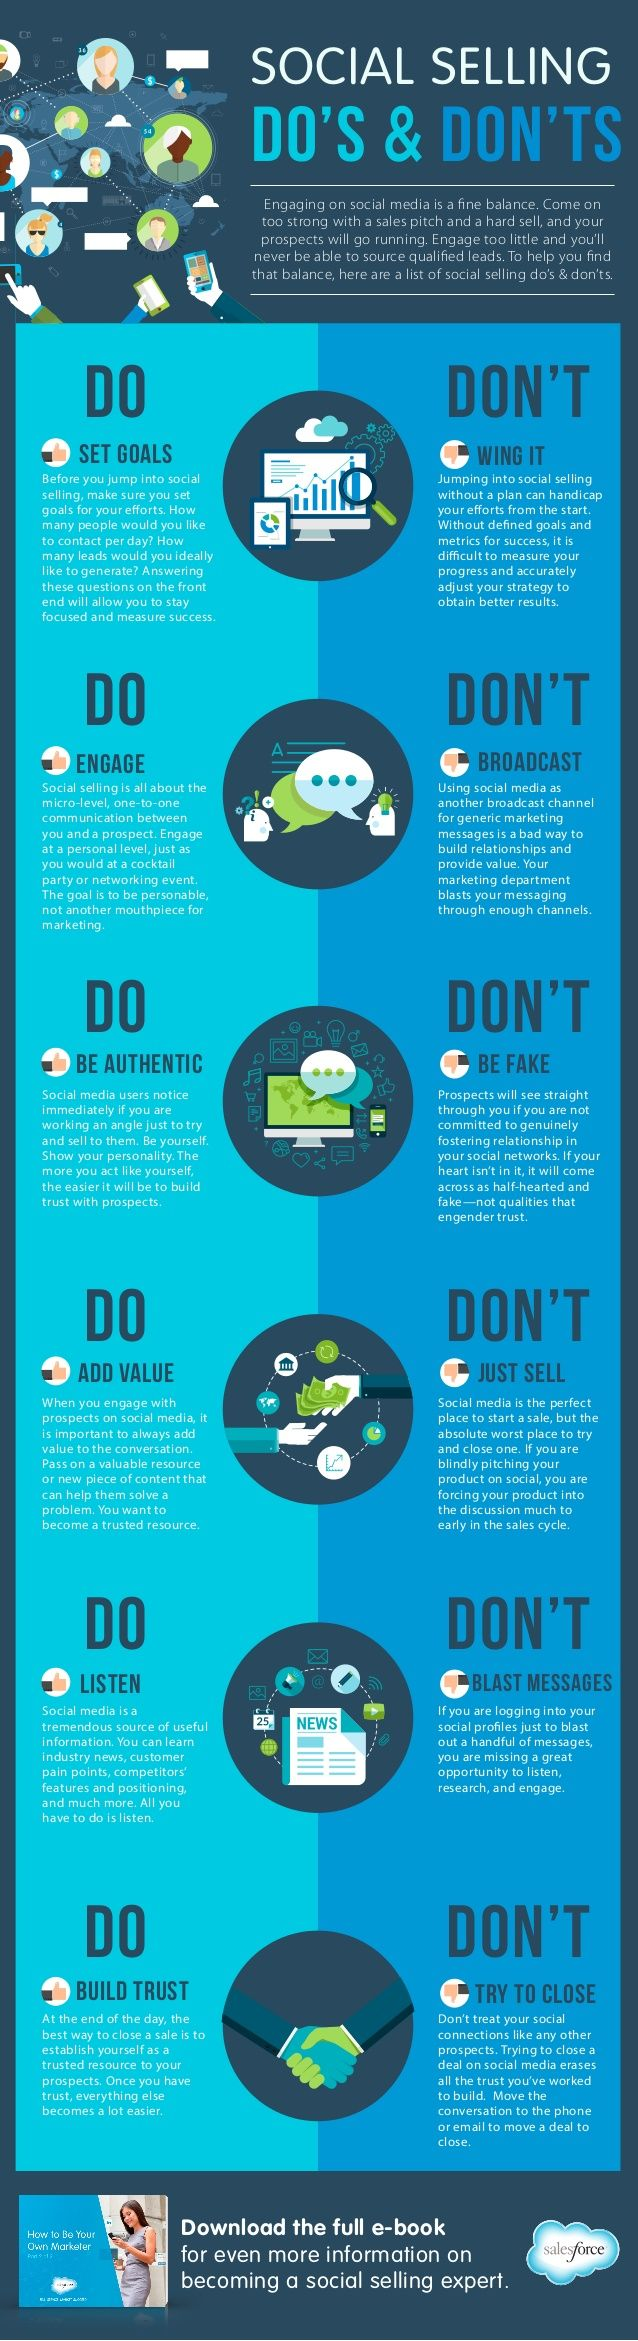 Infographic: Do's & Don'ts of Social Selling by Salesforce via slideshare. #socialmedia